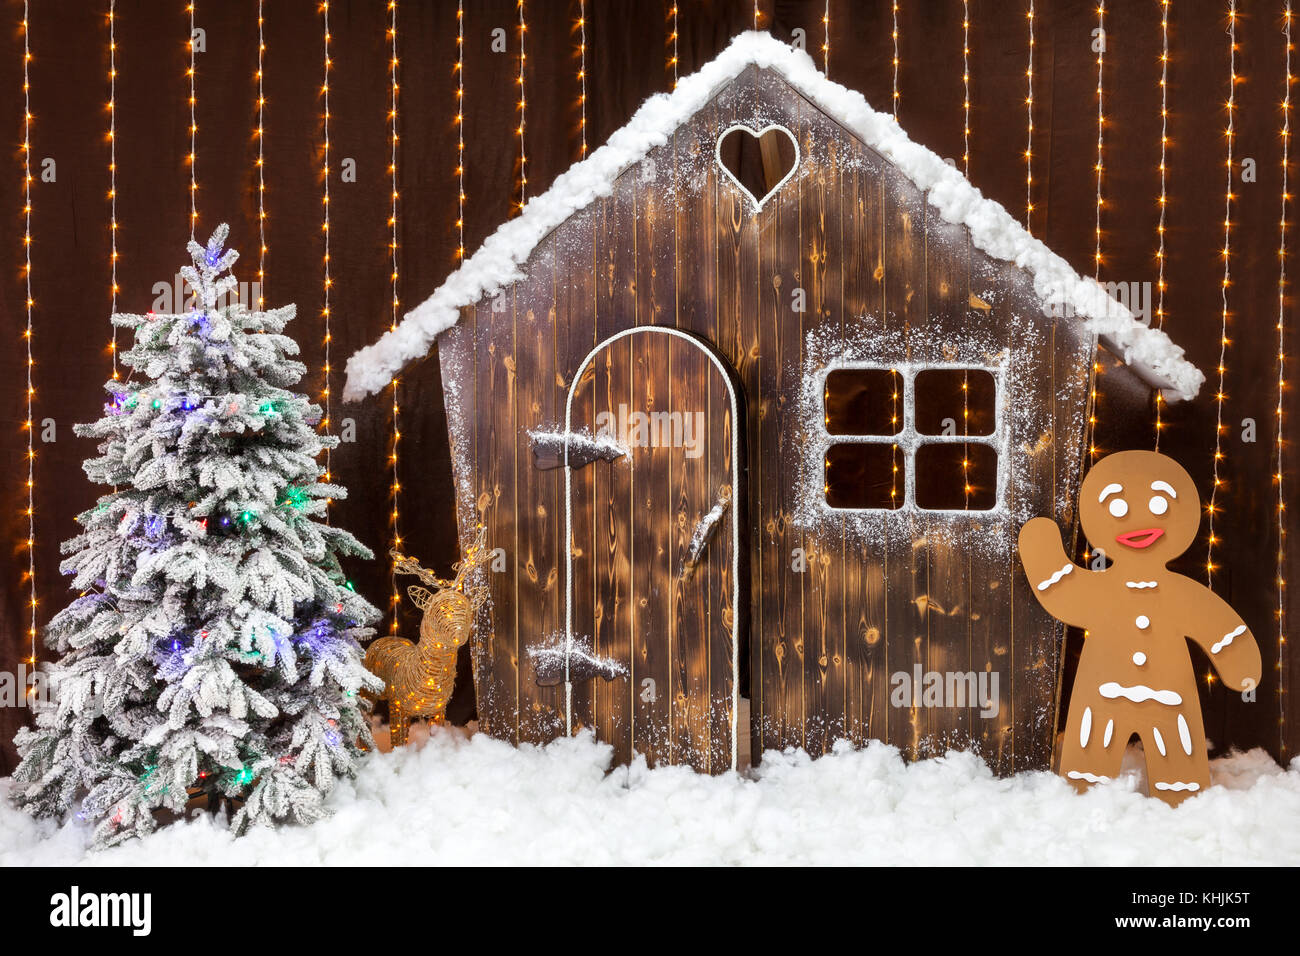 a new year scene with a snow covered wooden hut a gingerbread man and - Gingerbread House Christmas Decoration